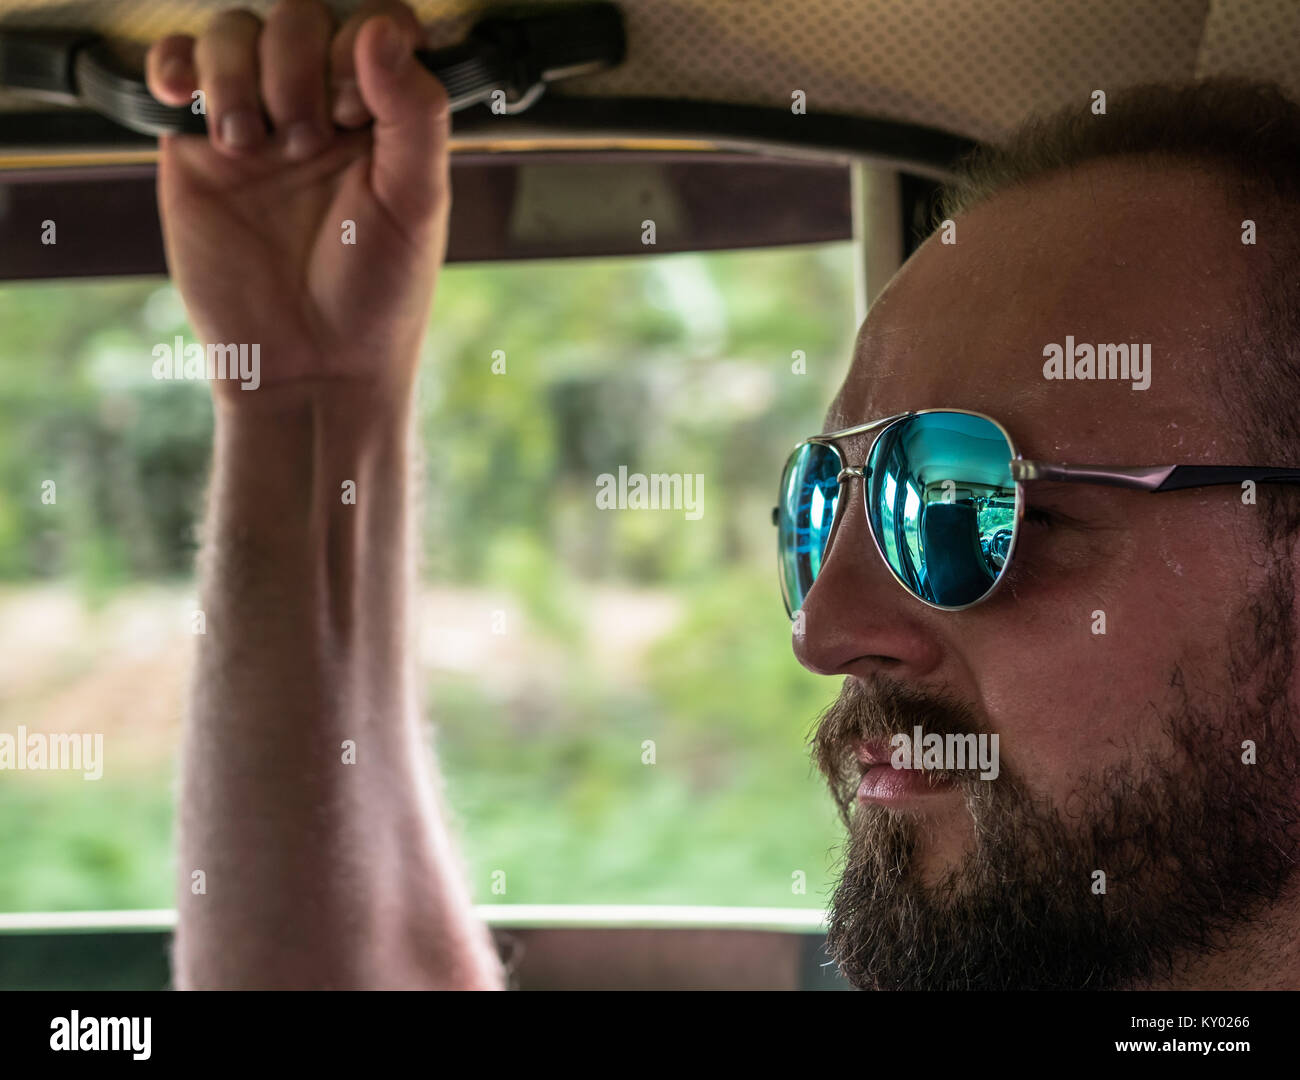 Headshot of man wearing sunglasses,  riding in a car, sweating, and holding onto grip handle. - Stock Image